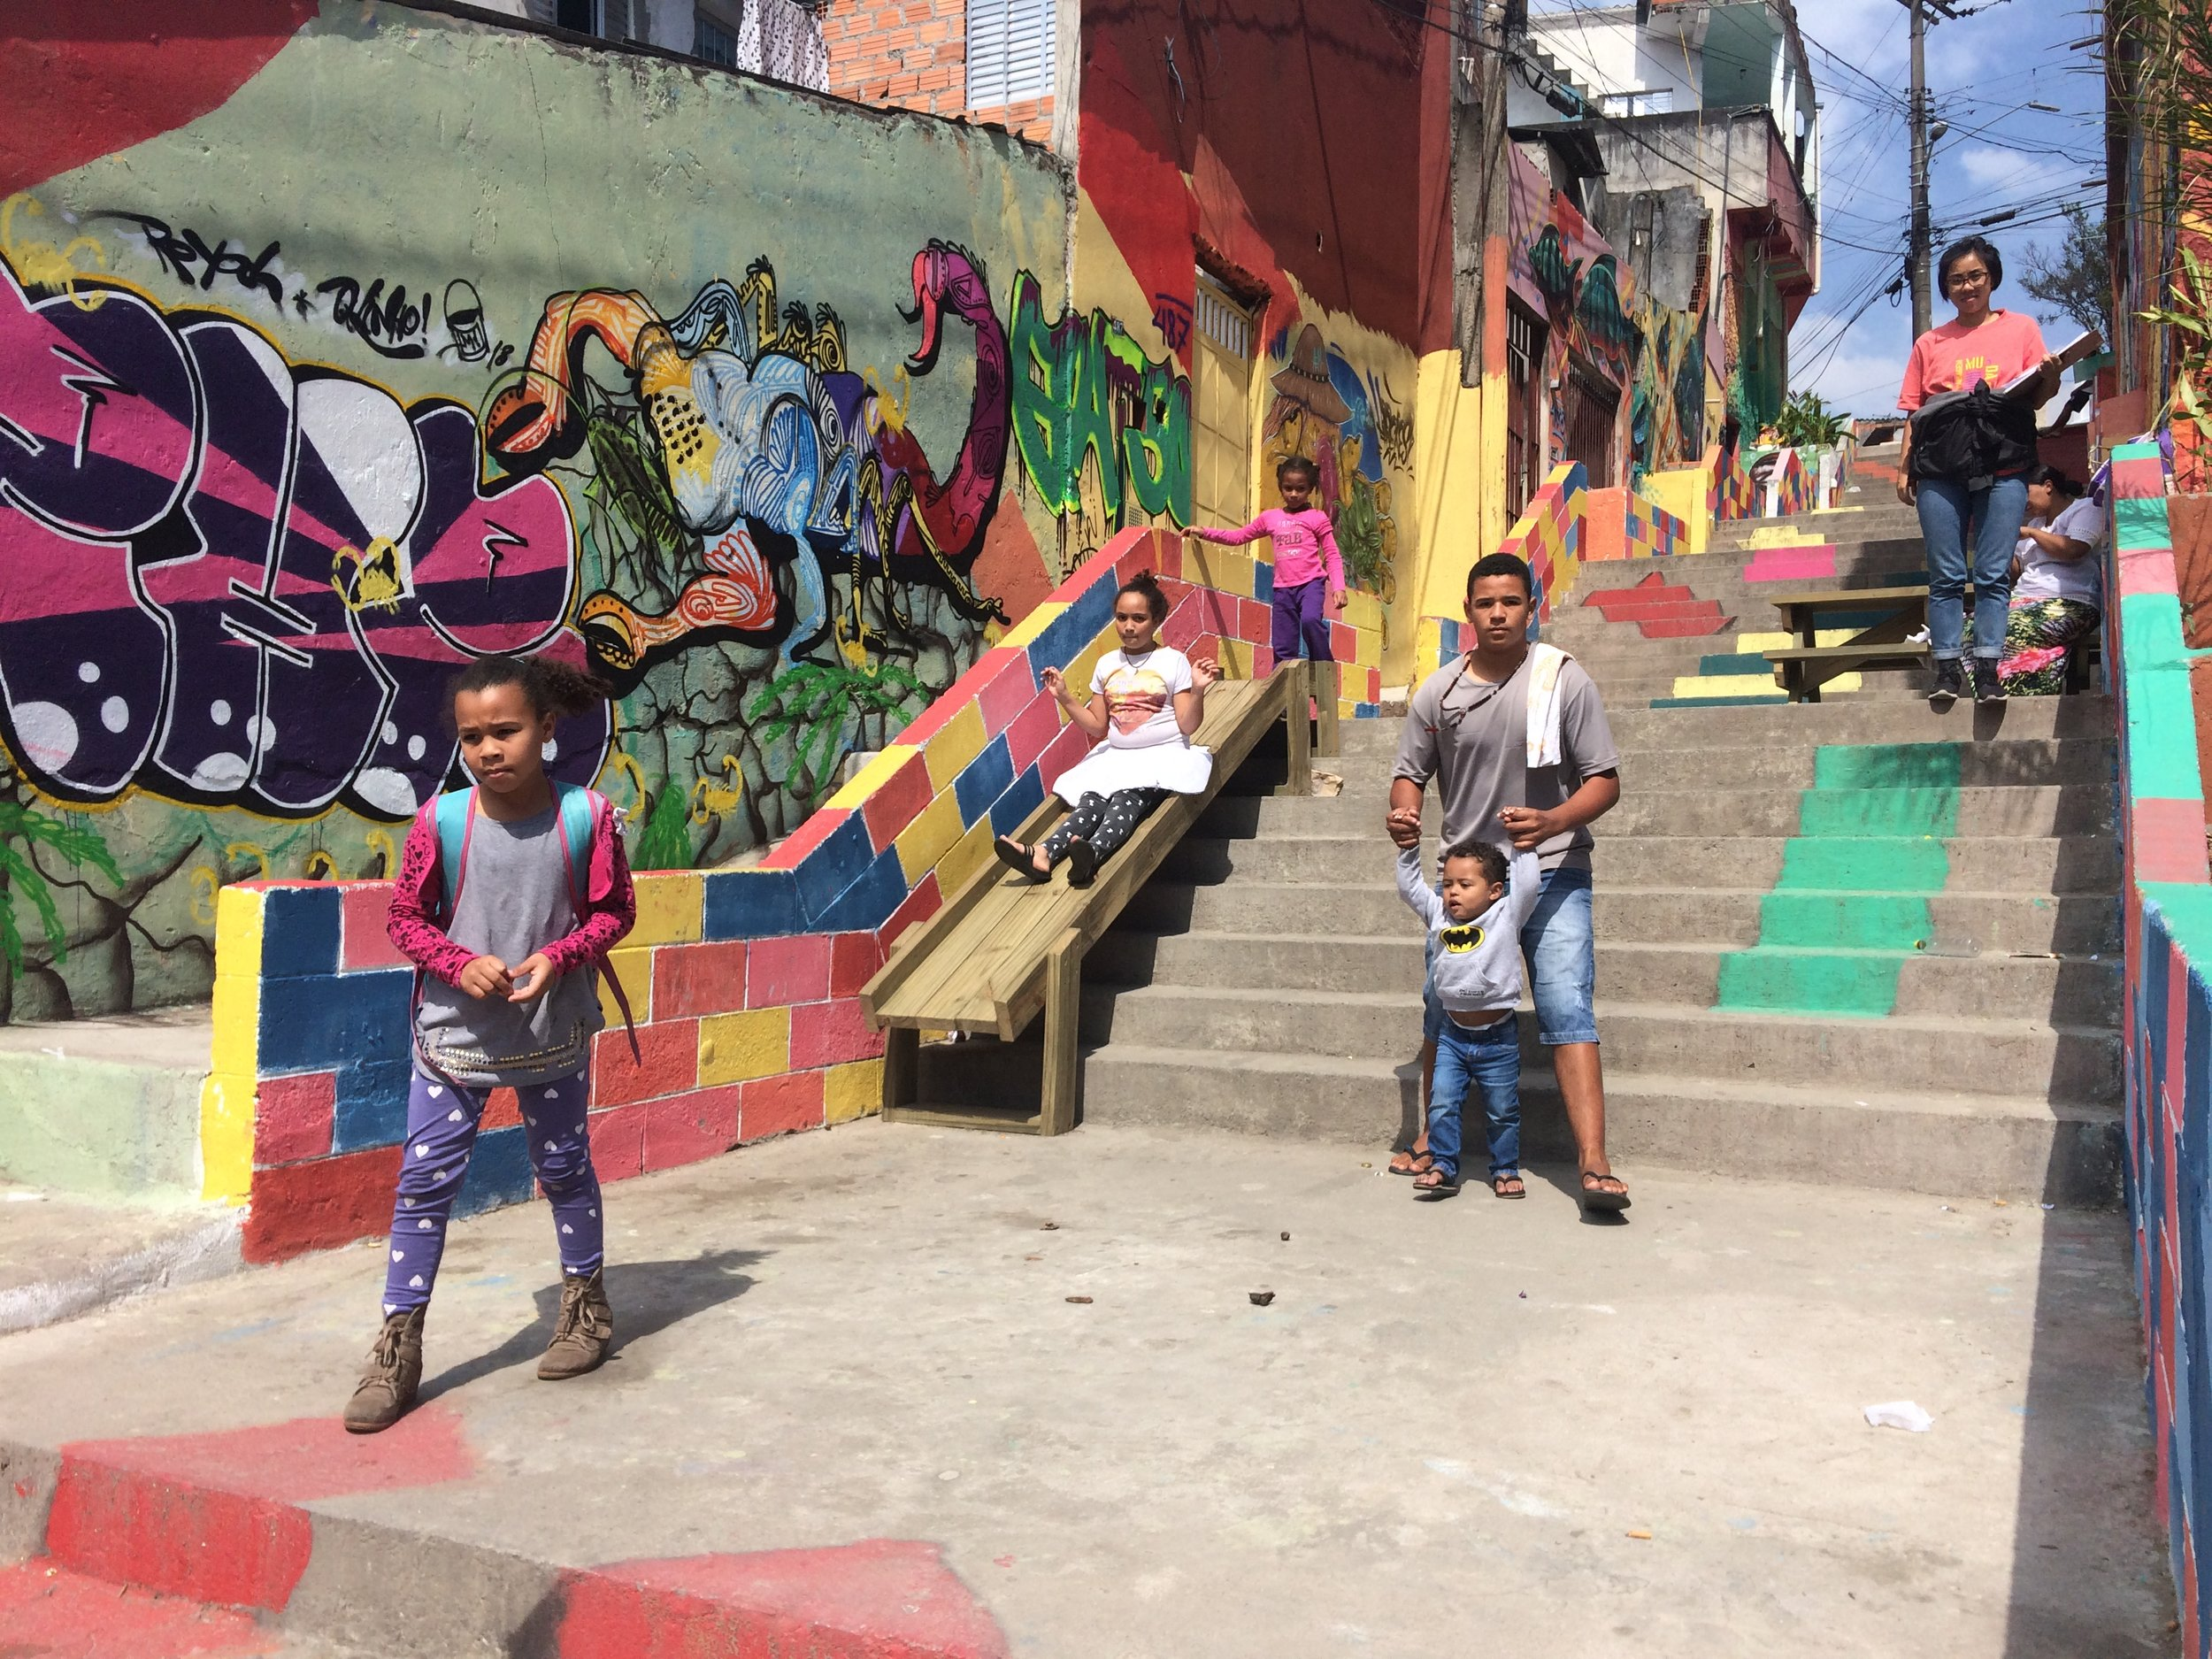 The Jardim Nakamura staircase now invites locals to enjoy art, play structures, and a safer place to walk through the city. Credit: Cidade Ativa